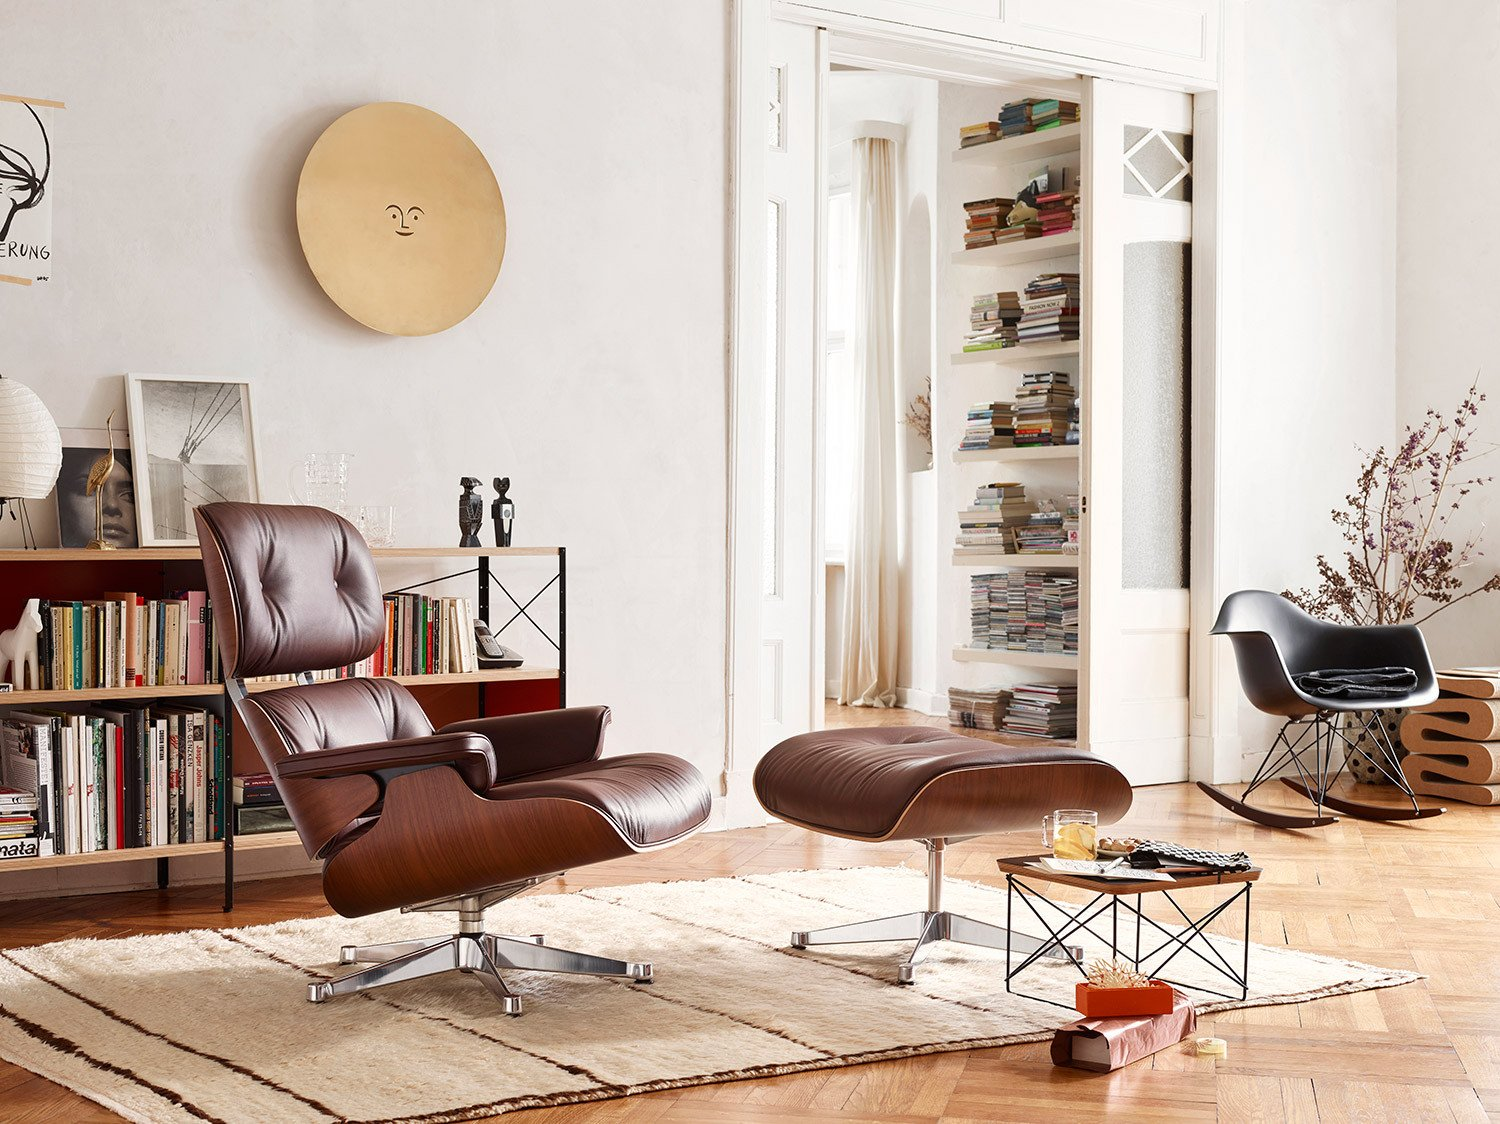 Phenomenal Why Are The Eames Lounge Chairs So Darn Expensive Lamtechconsult Wood Chair Design Ideas Lamtechconsultcom